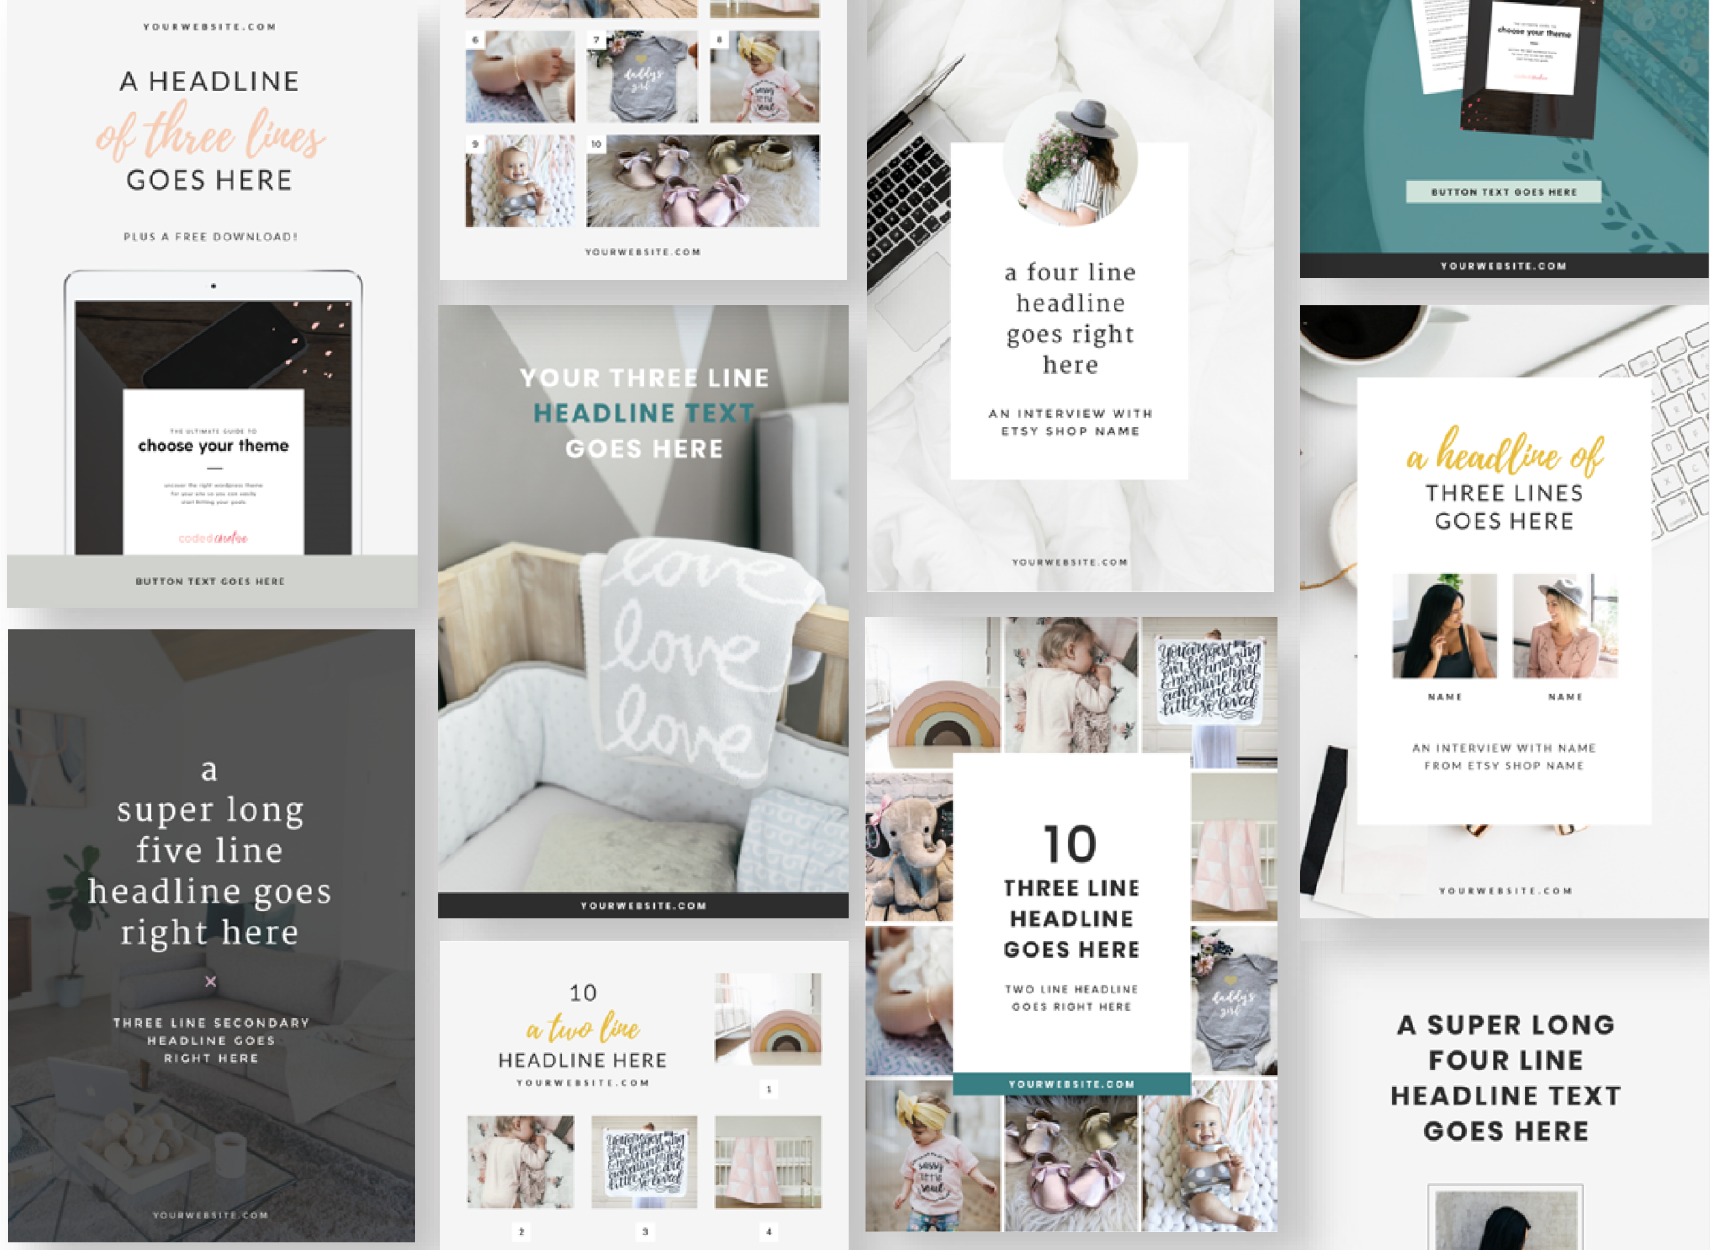 canva graphic templates mockup-08.png